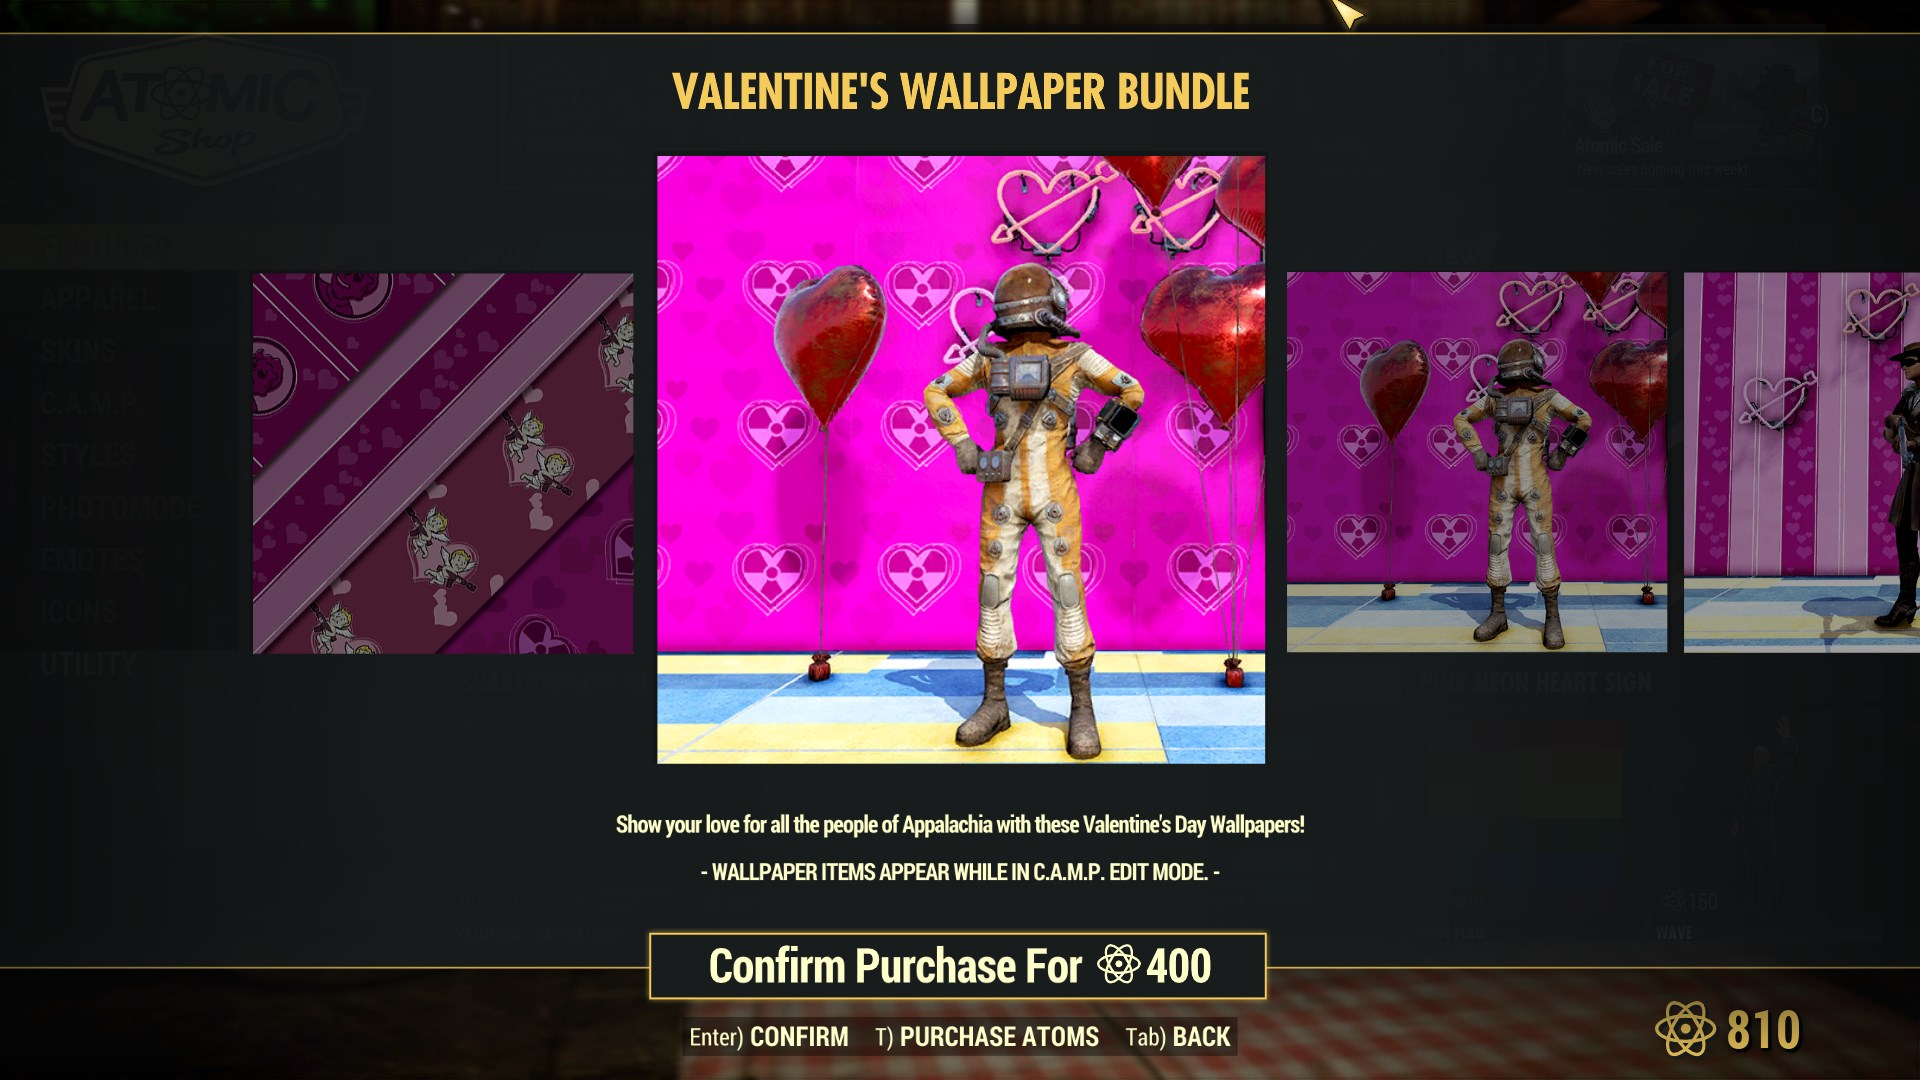 Valentine's Wallpaper Bundle